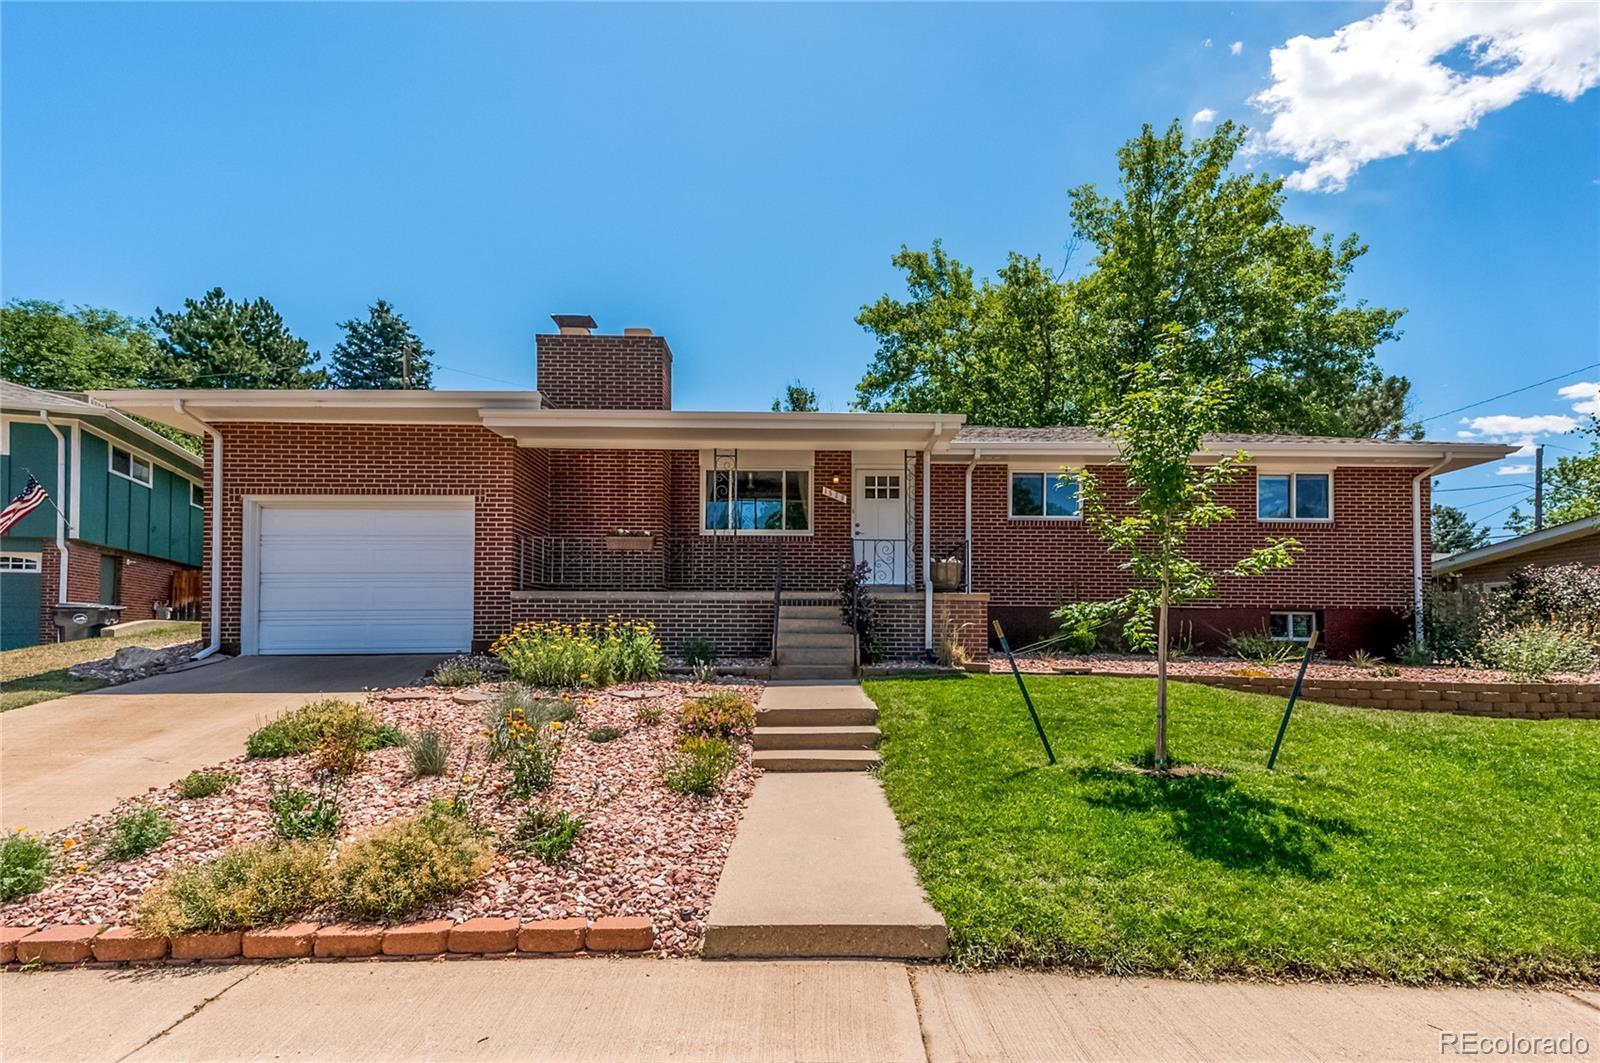 1520 Ulysses Street, Golden, CO 80401 - #: 8016186